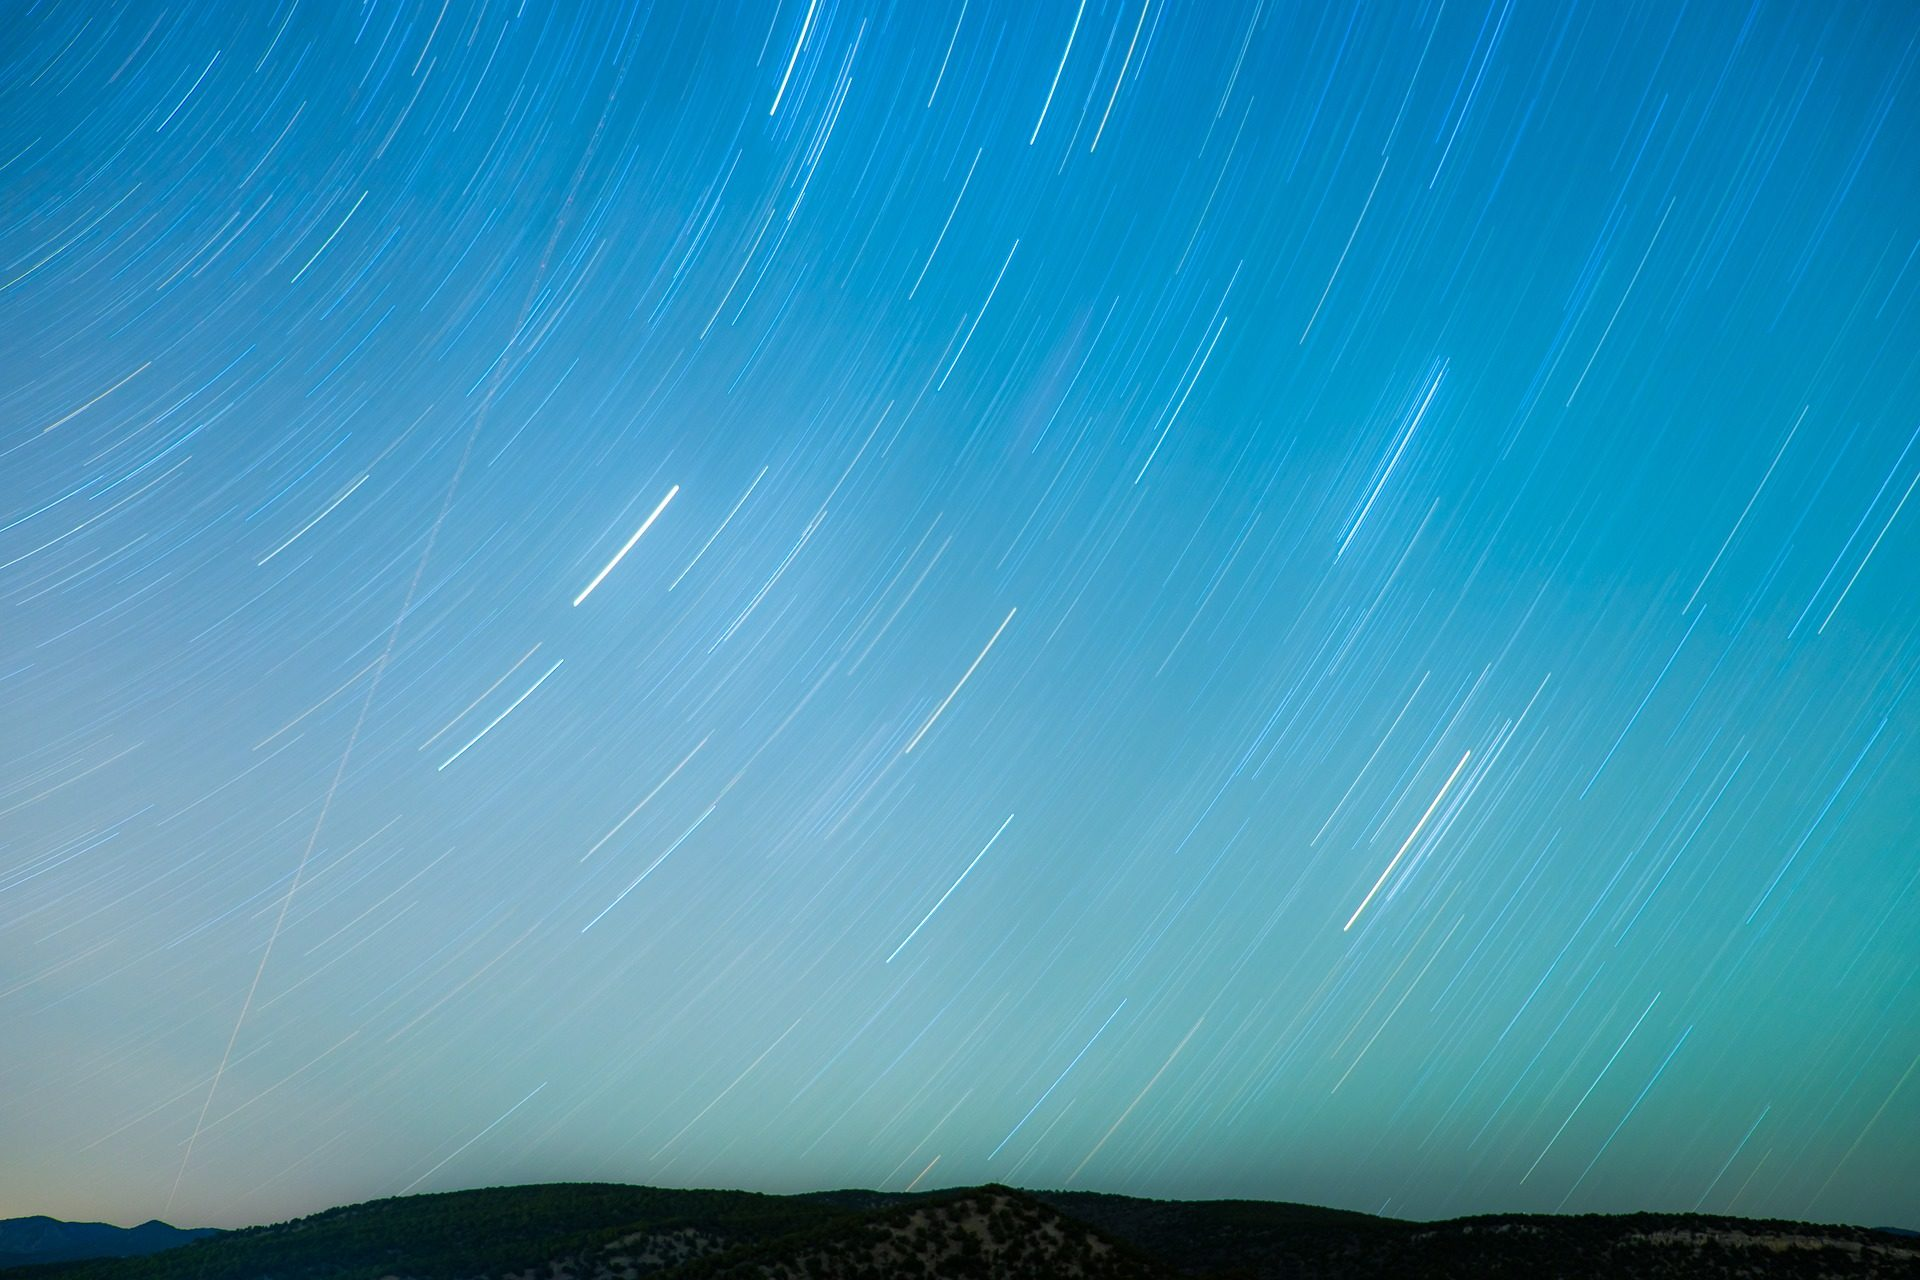 Star, nuit, Time-lapse, mouvement, Sky - Fonds d'écran HD - Professor-falken.com